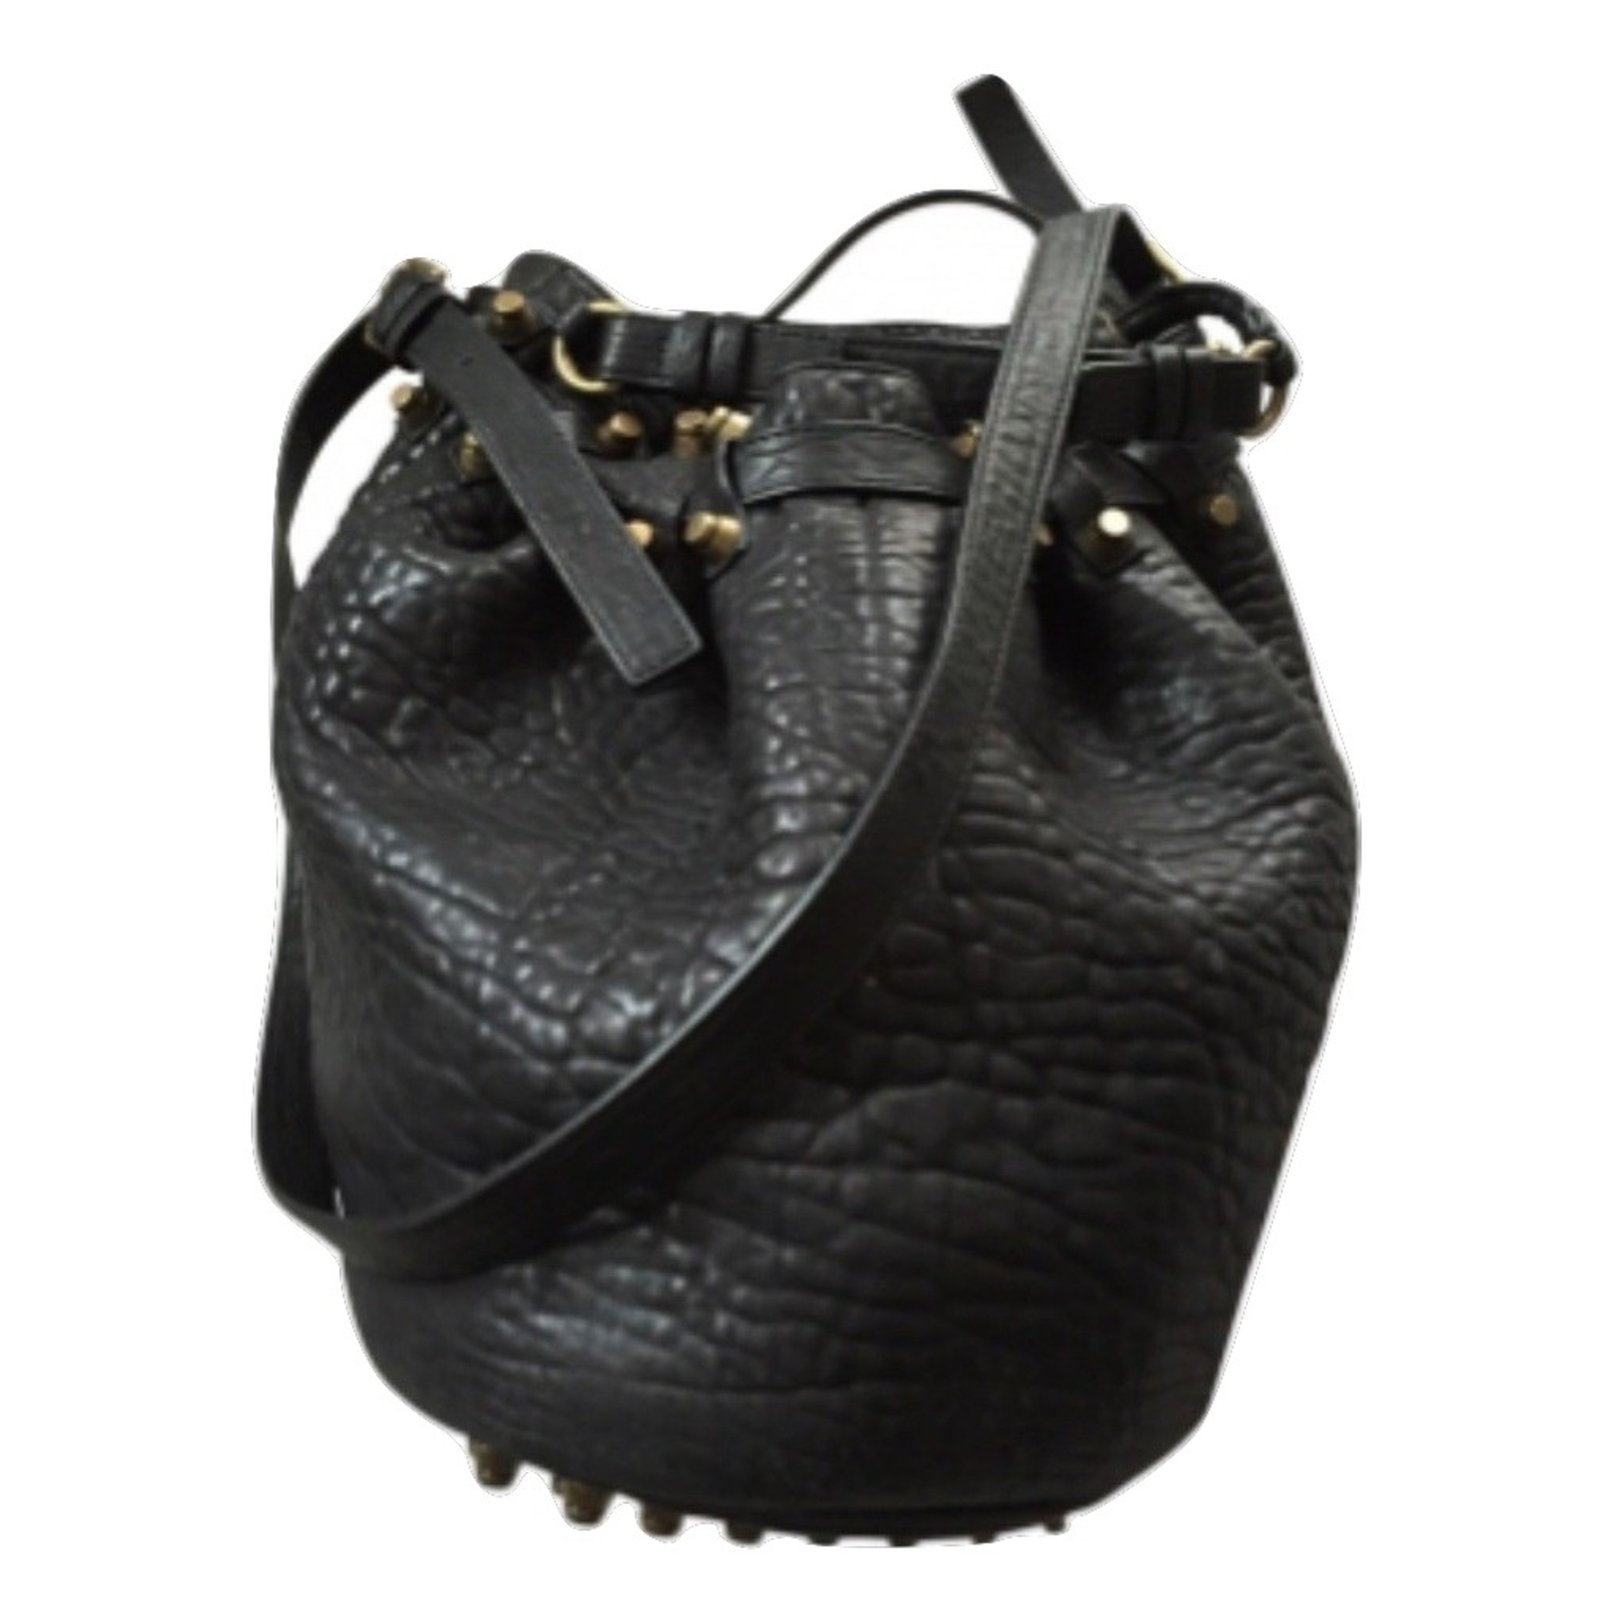 Alexander Handbags Leather Black Ref 5469